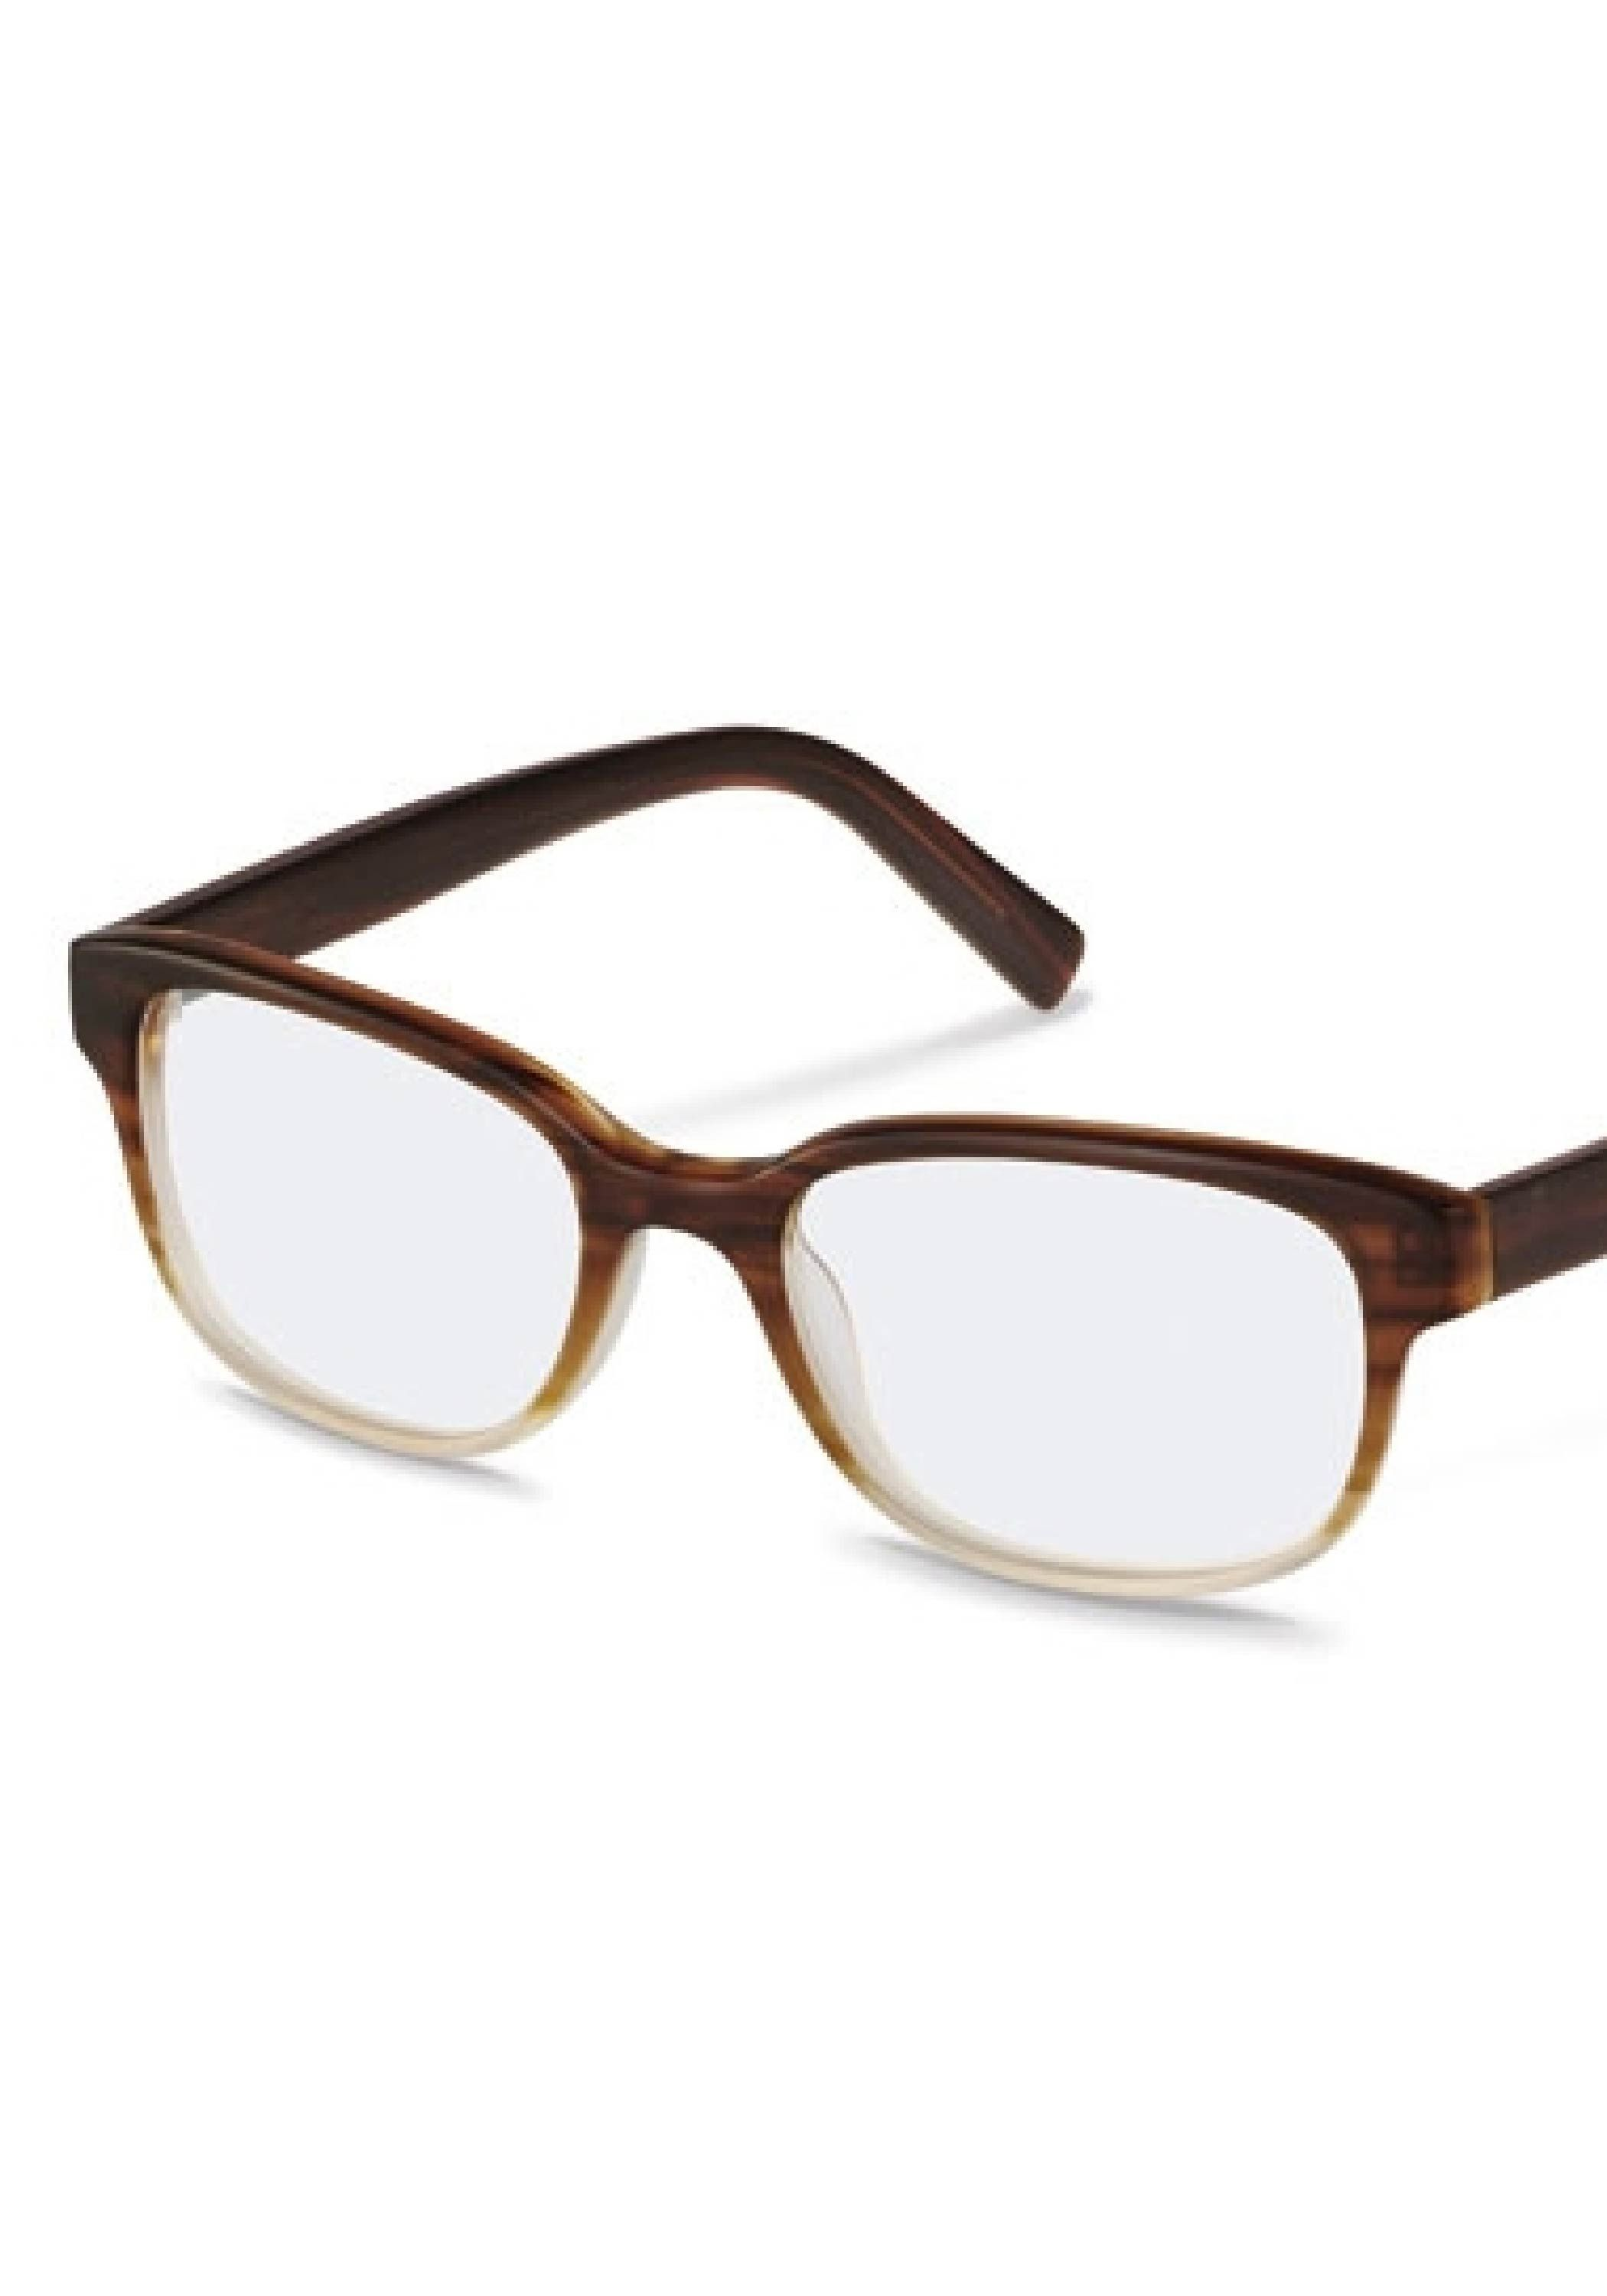 Available in chocolate gradient, plum, black, havana, and more, these retro  rocco by Rodenstock glasses will help you look better and see perfectly  every ... 1f7db6249ecf